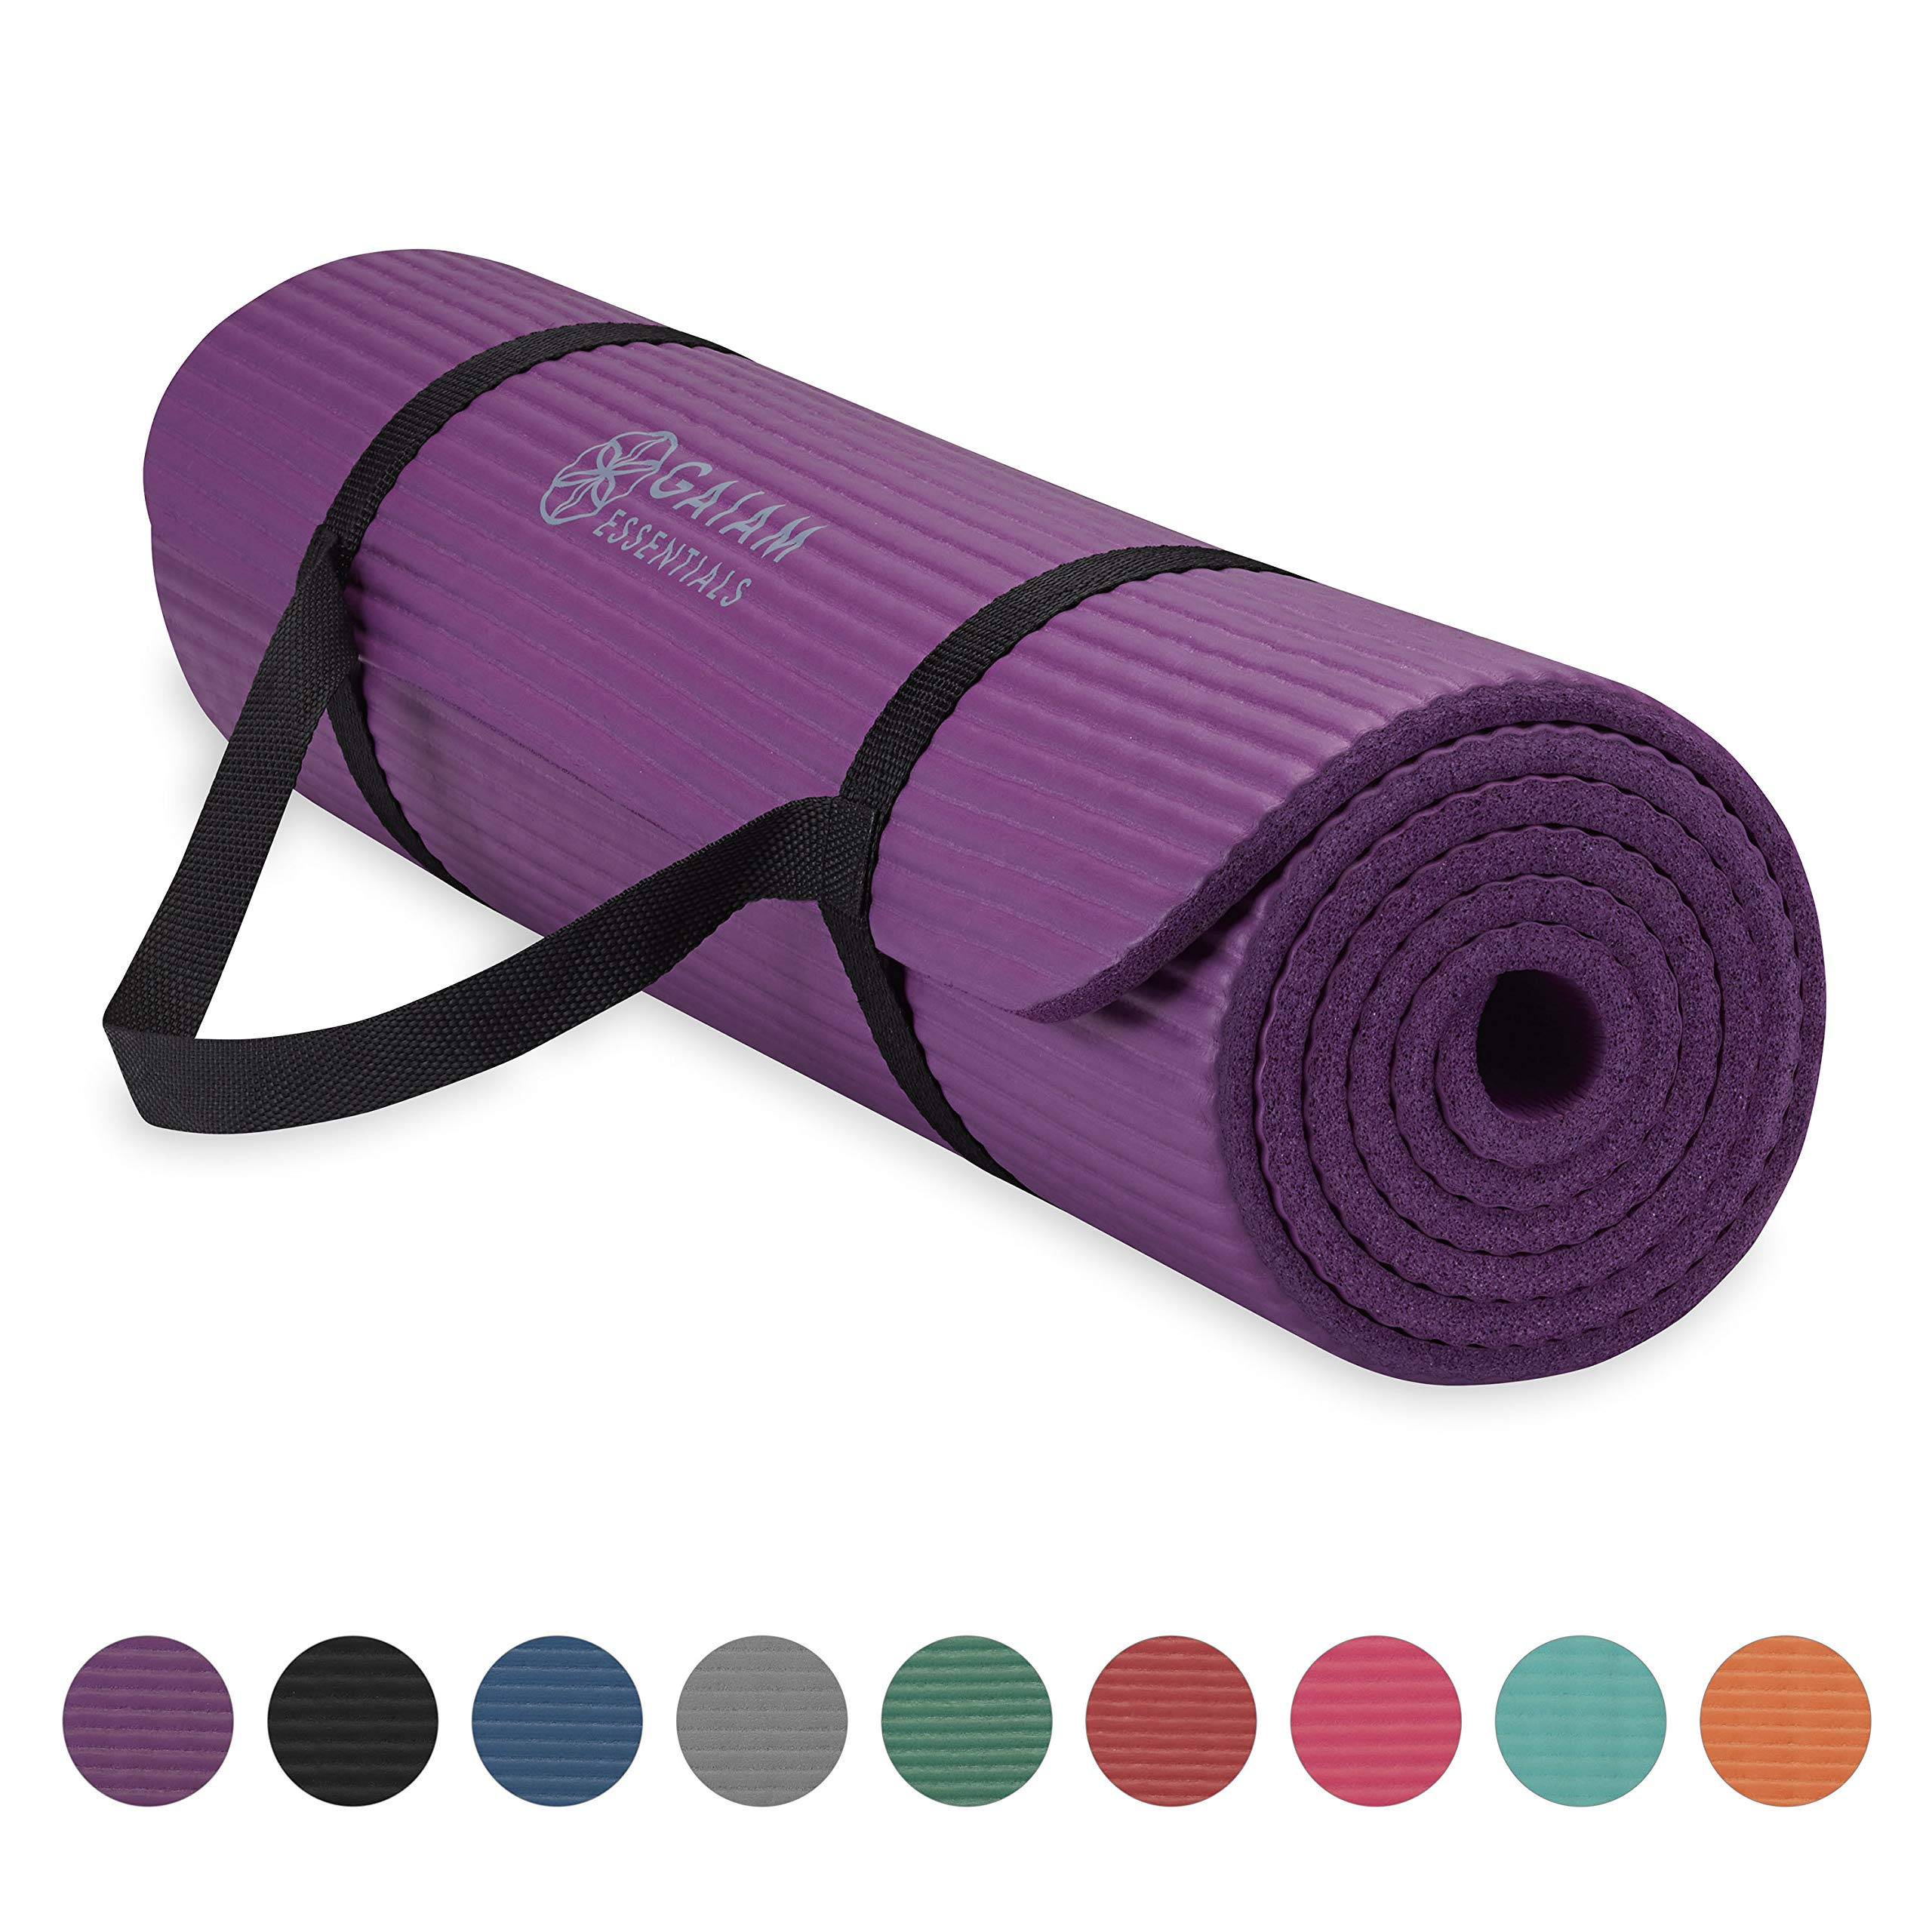 Gaiam Essentials Thick Yoga Mat Fitness & Exercise Mat with Easy-Cinch Yoga Mat Carrier Strap, Purple, 72''L x 24''W x 2/5 Inch Thick